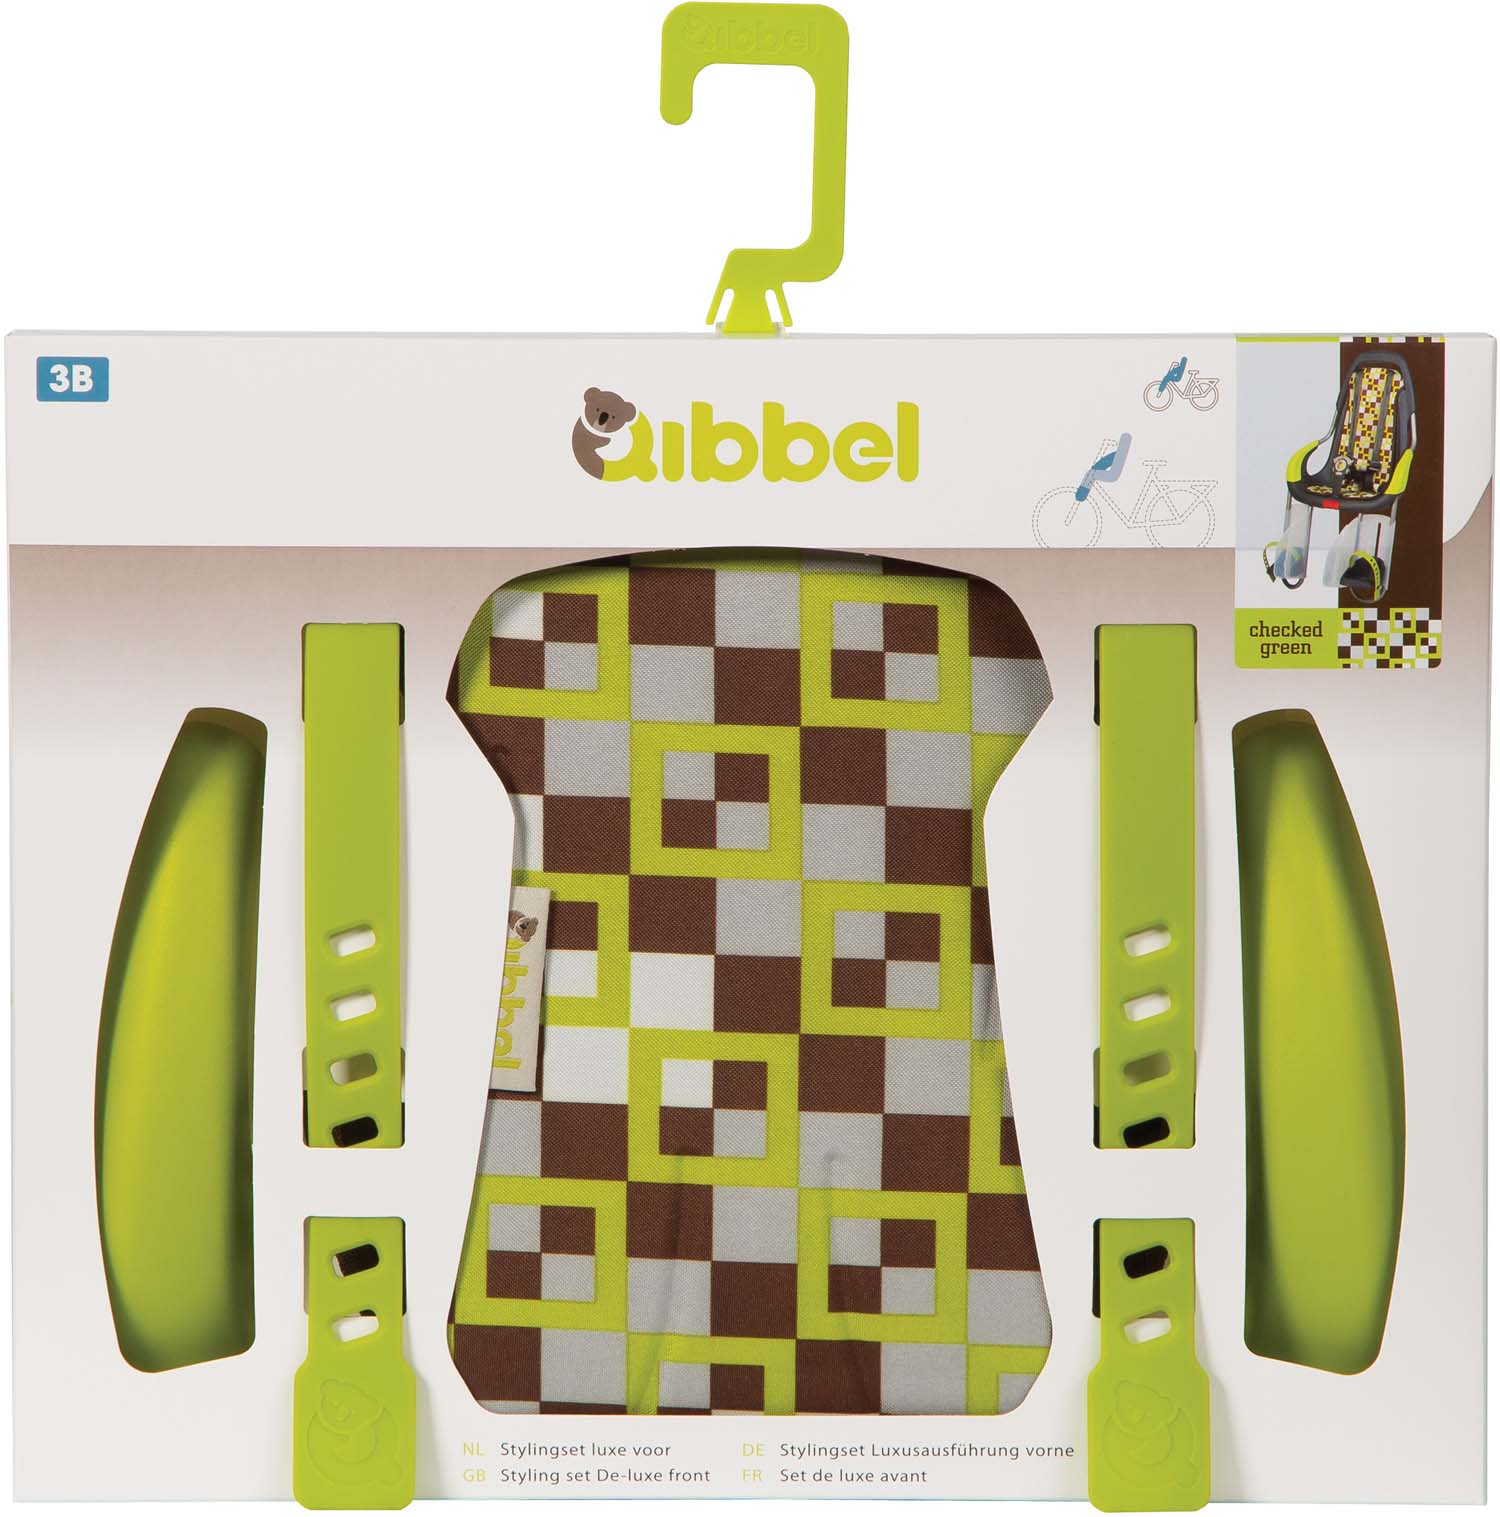 Qibbel Stylingset Luxe Checker Groen t.b.v. Voorzitje